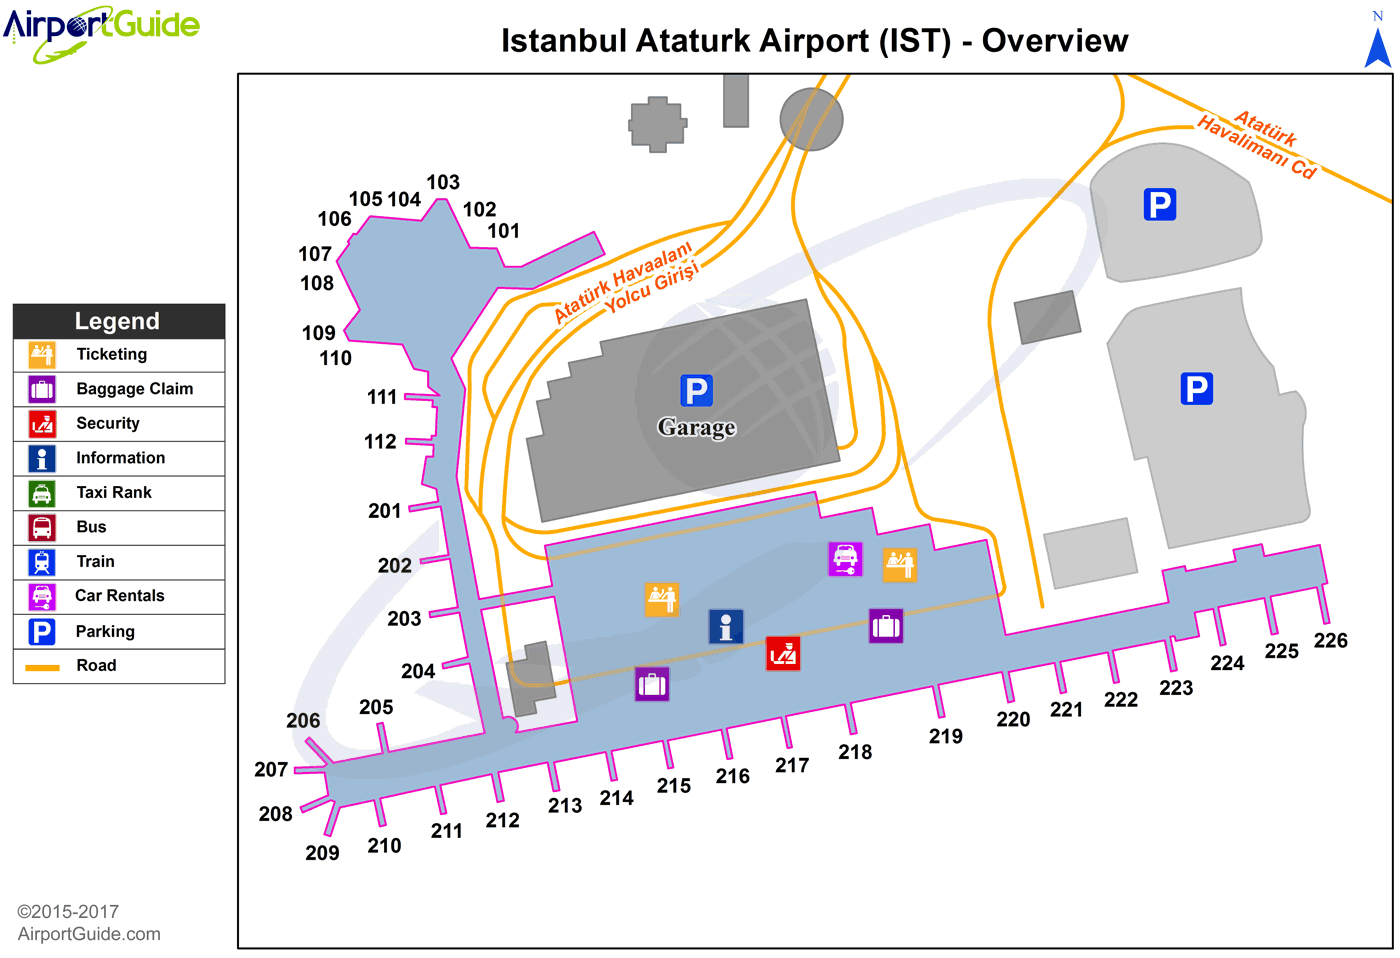 ataturk international airport map Istanbul Ataturk International Ist Airport Terminal Map ataturk international airport map